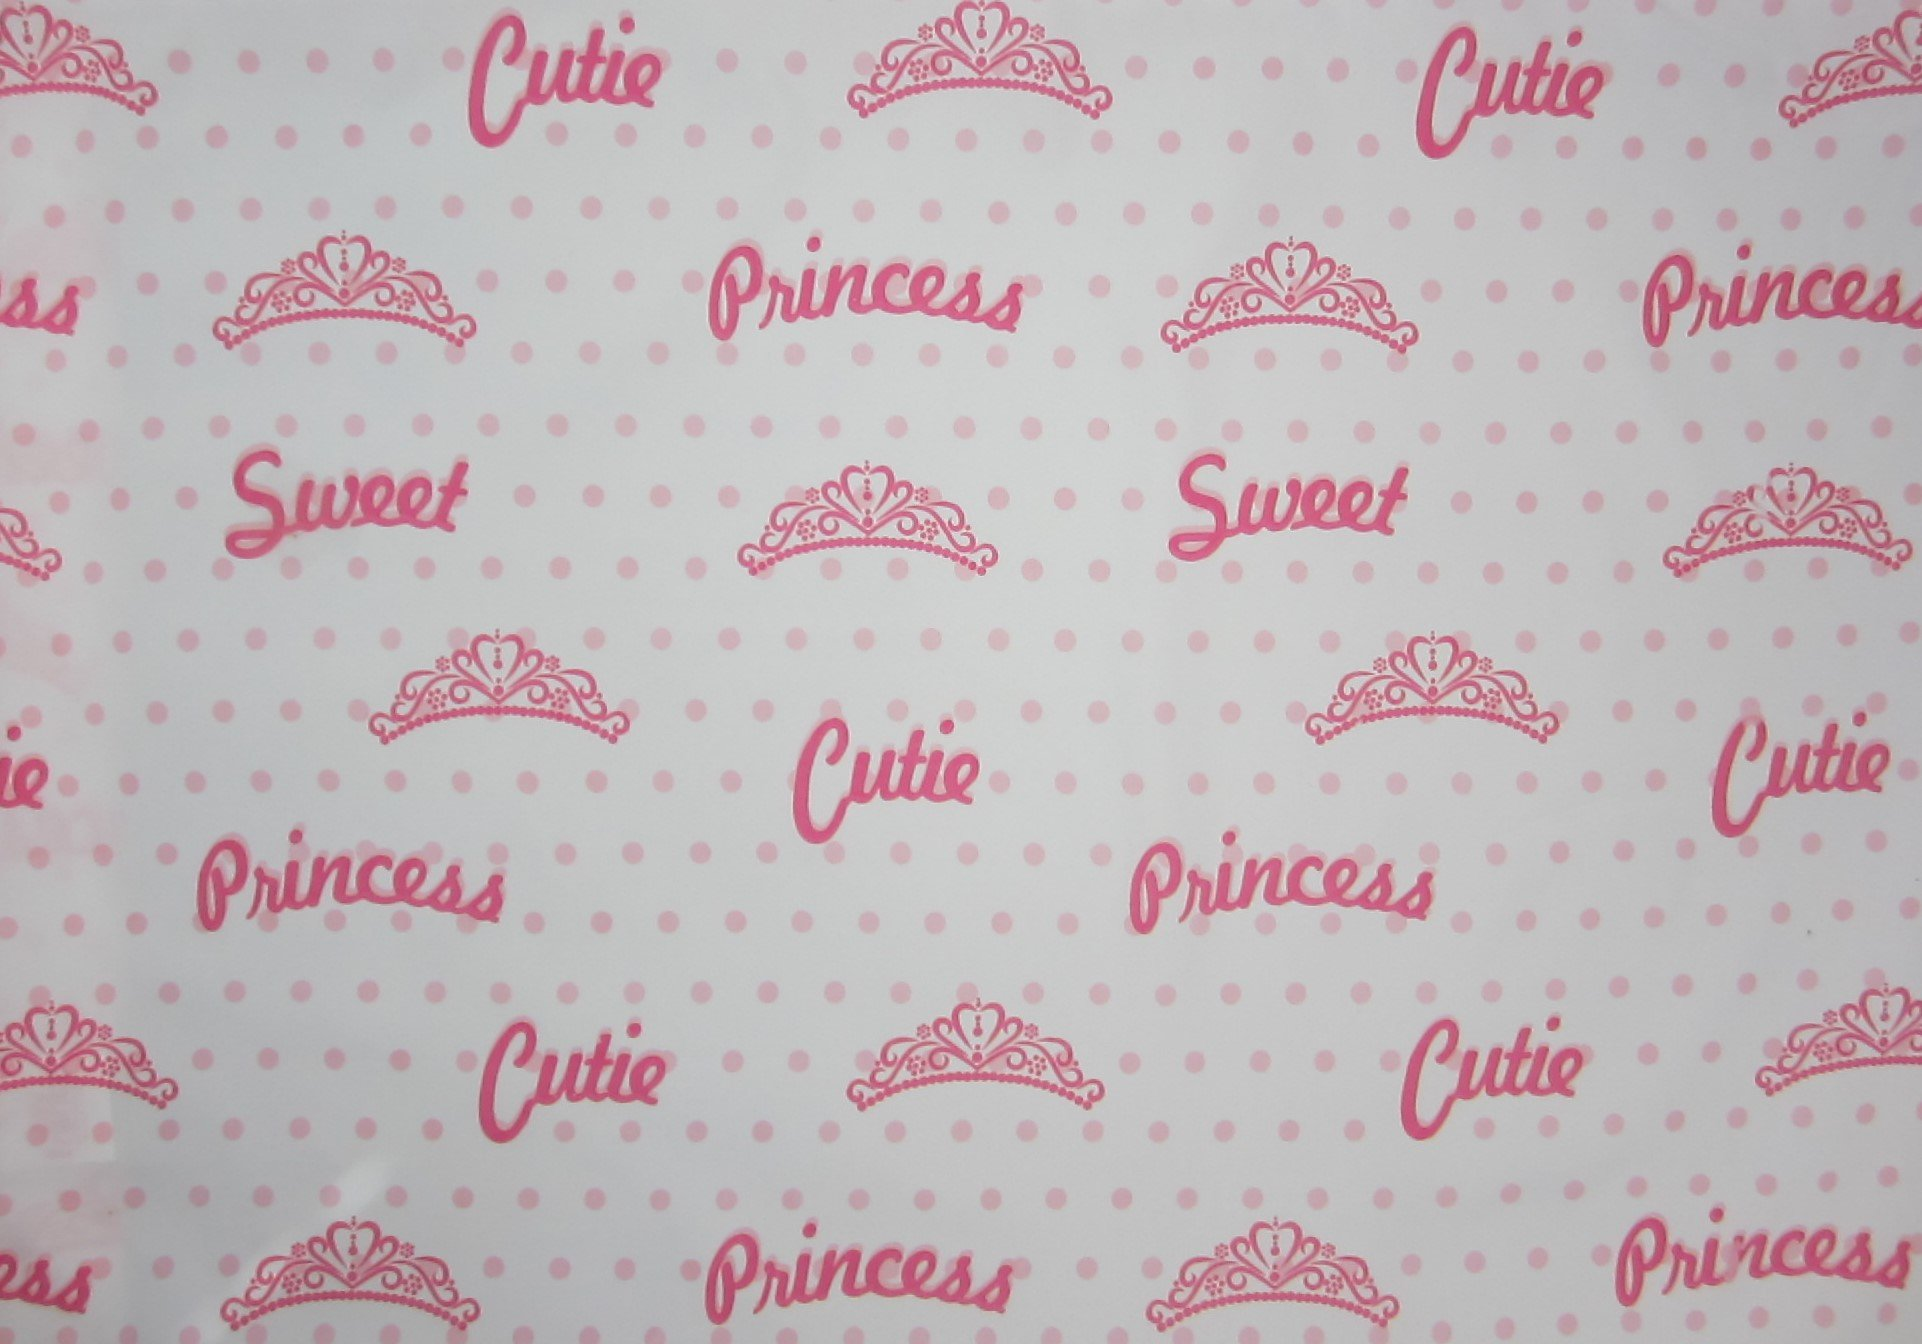 Princess Kitty 100% Polyester (Flat Sheet ONLY) Size Full Girls Kids Bedding